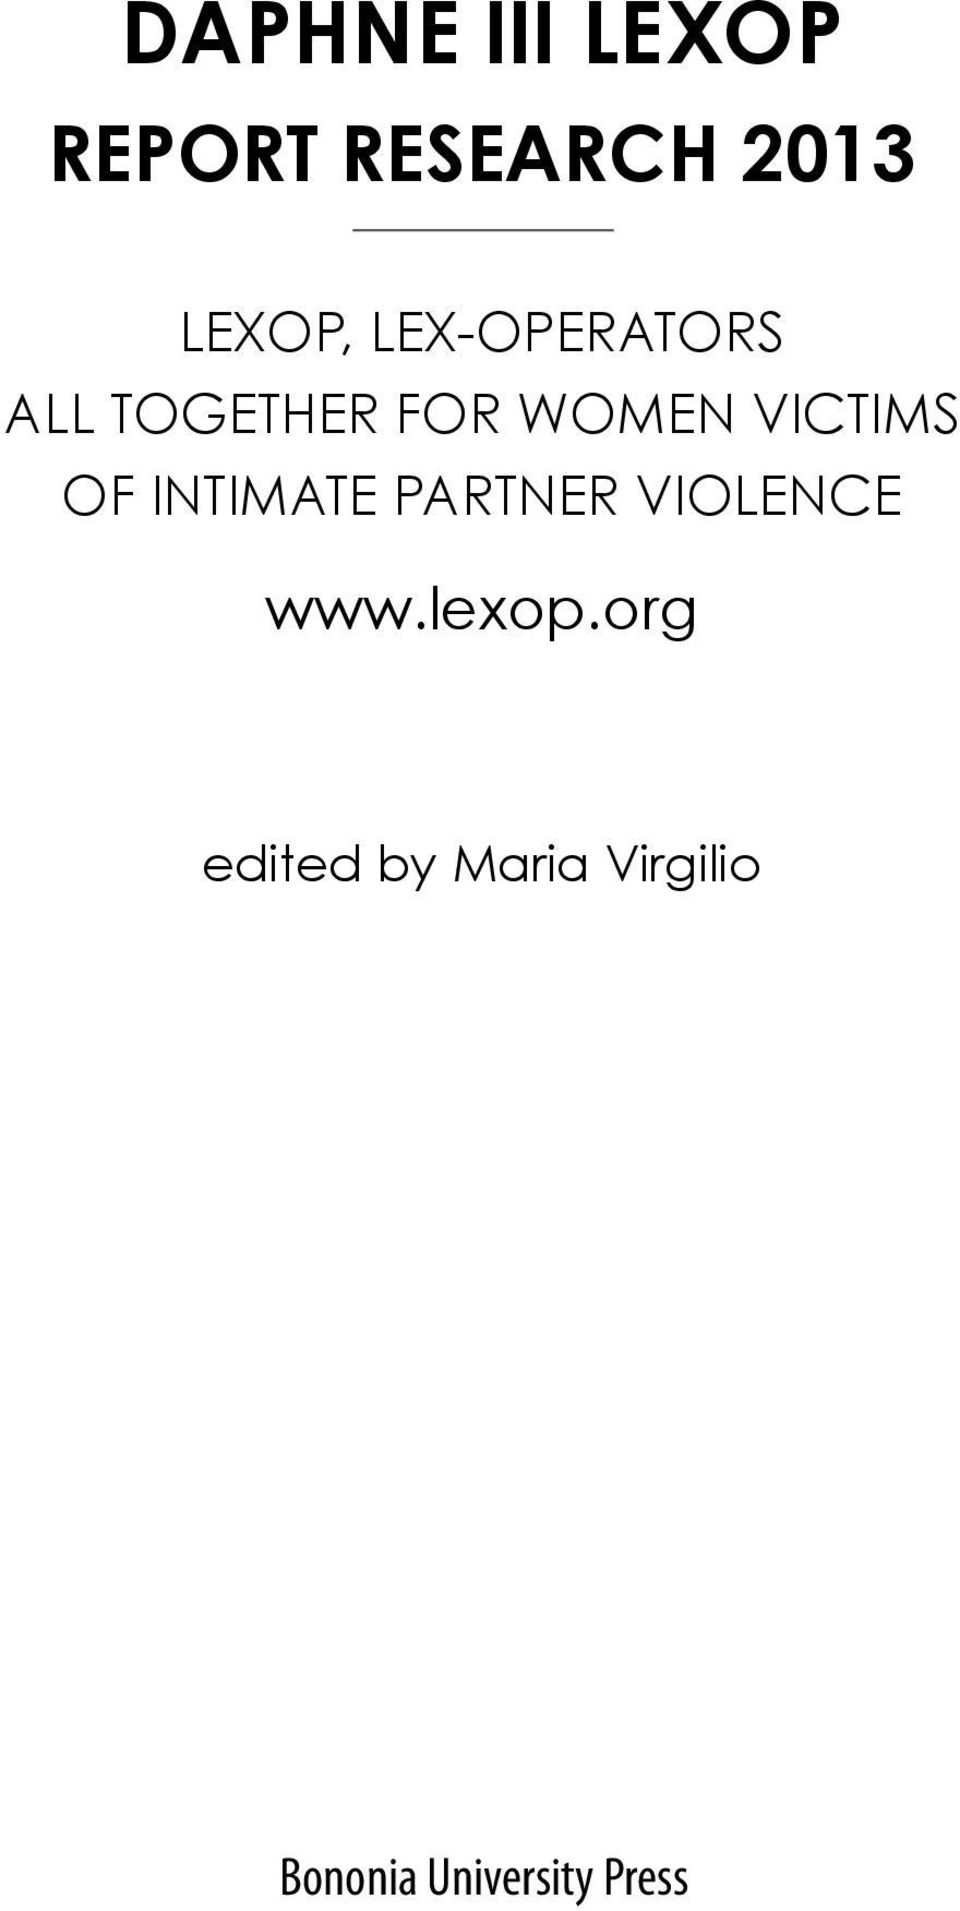 of intimate partner violence www.lexop.